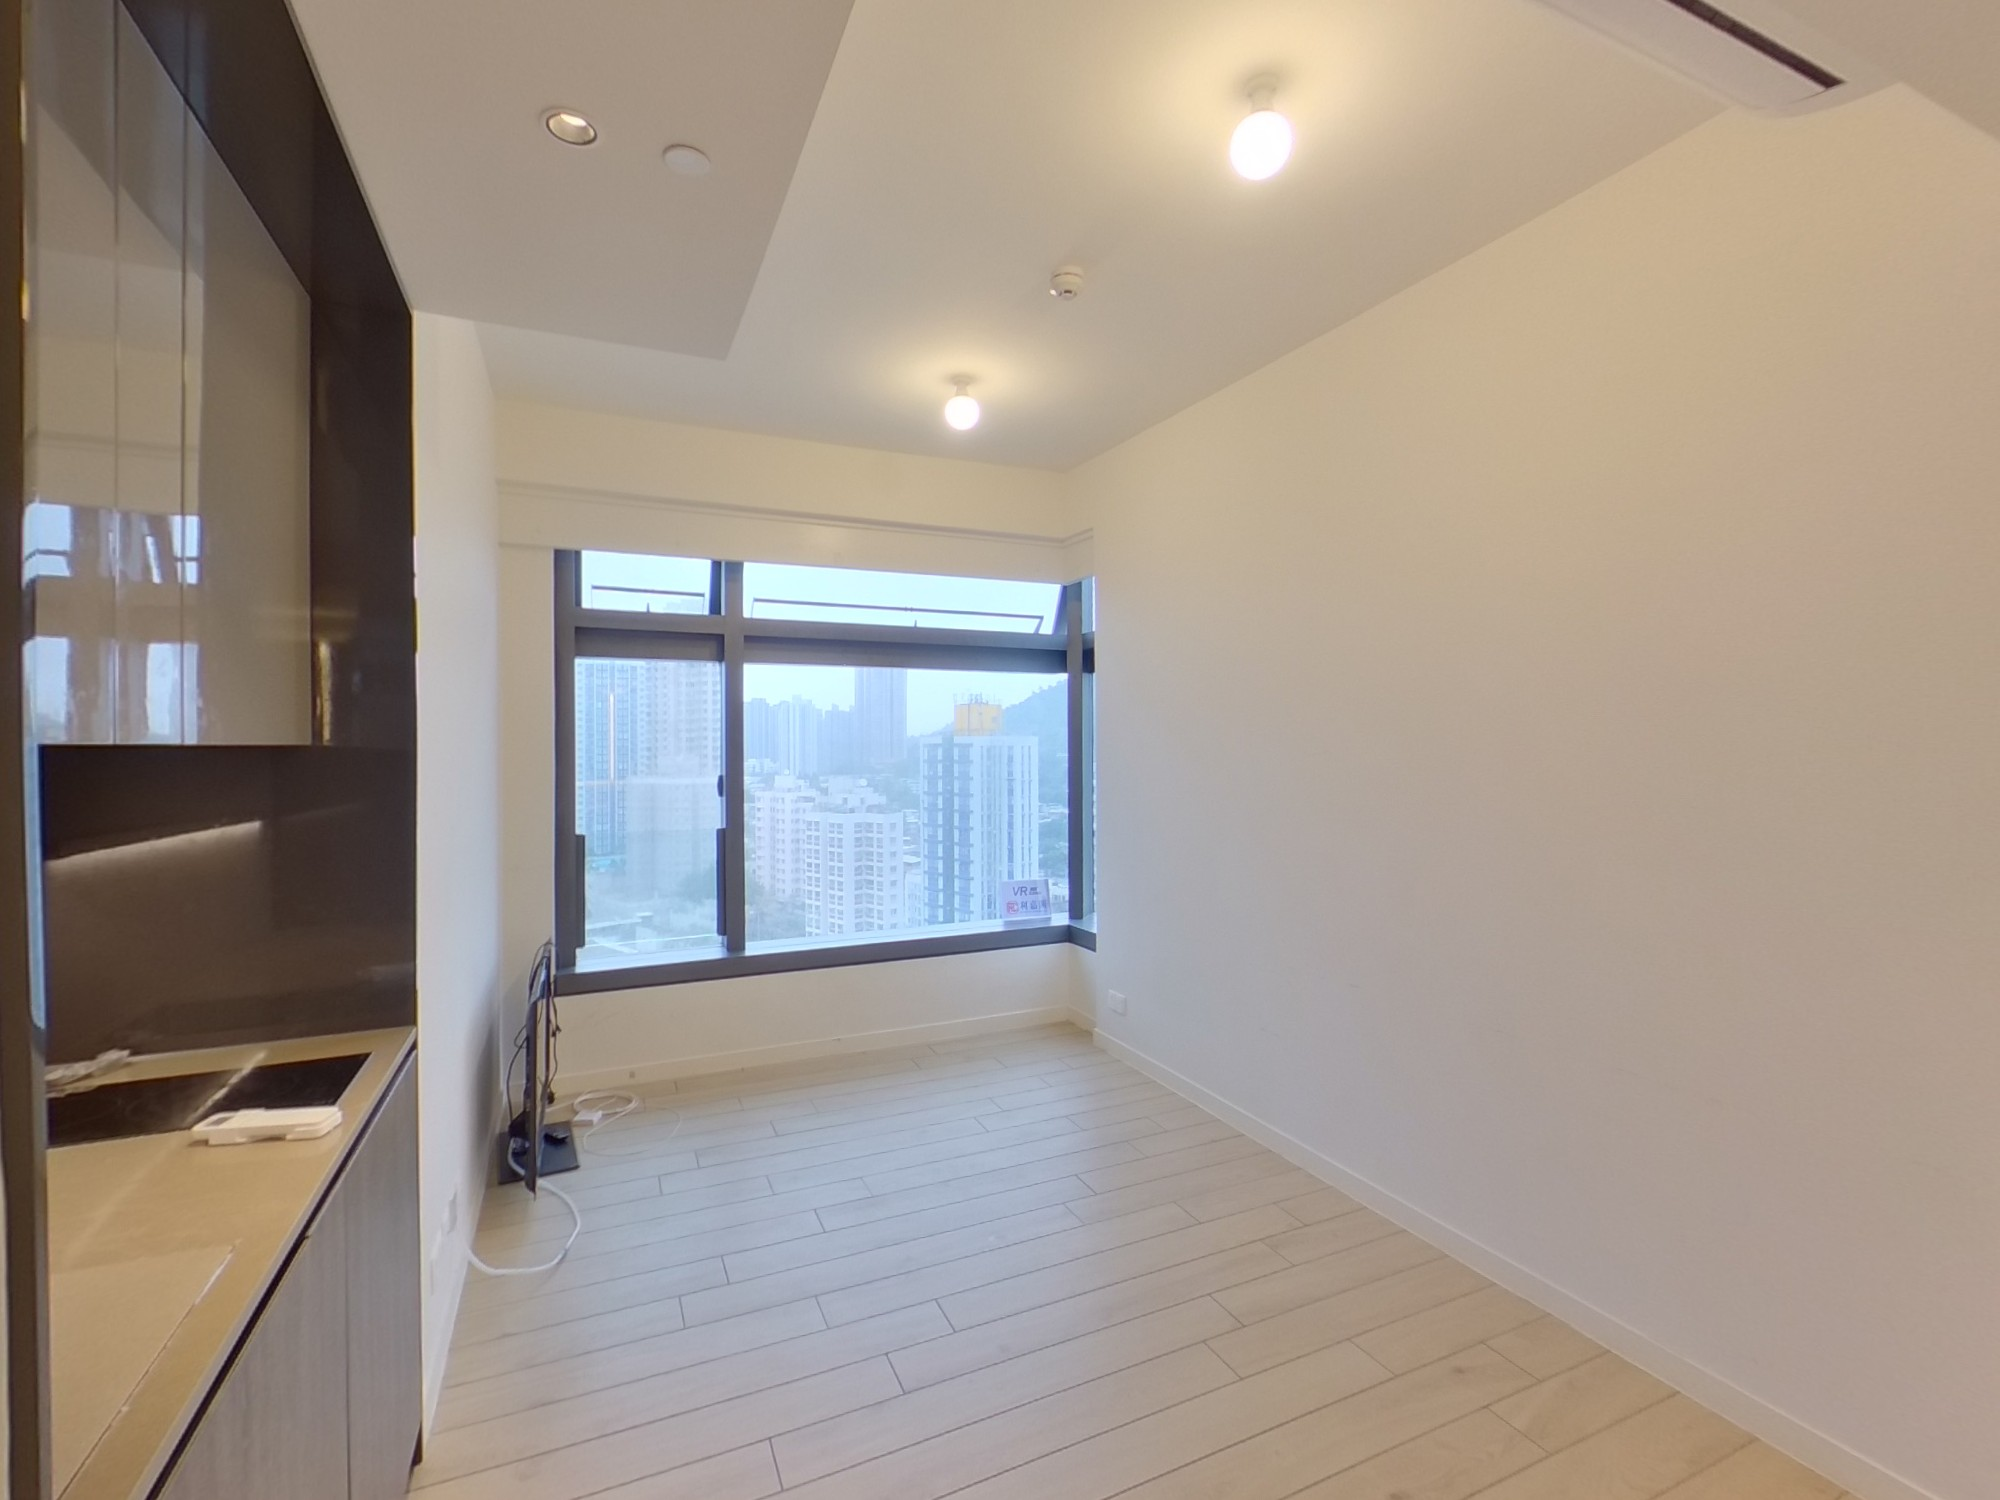 Tuen Mun Town Centre COO RESIDENCE Middle Floor House730-3784981